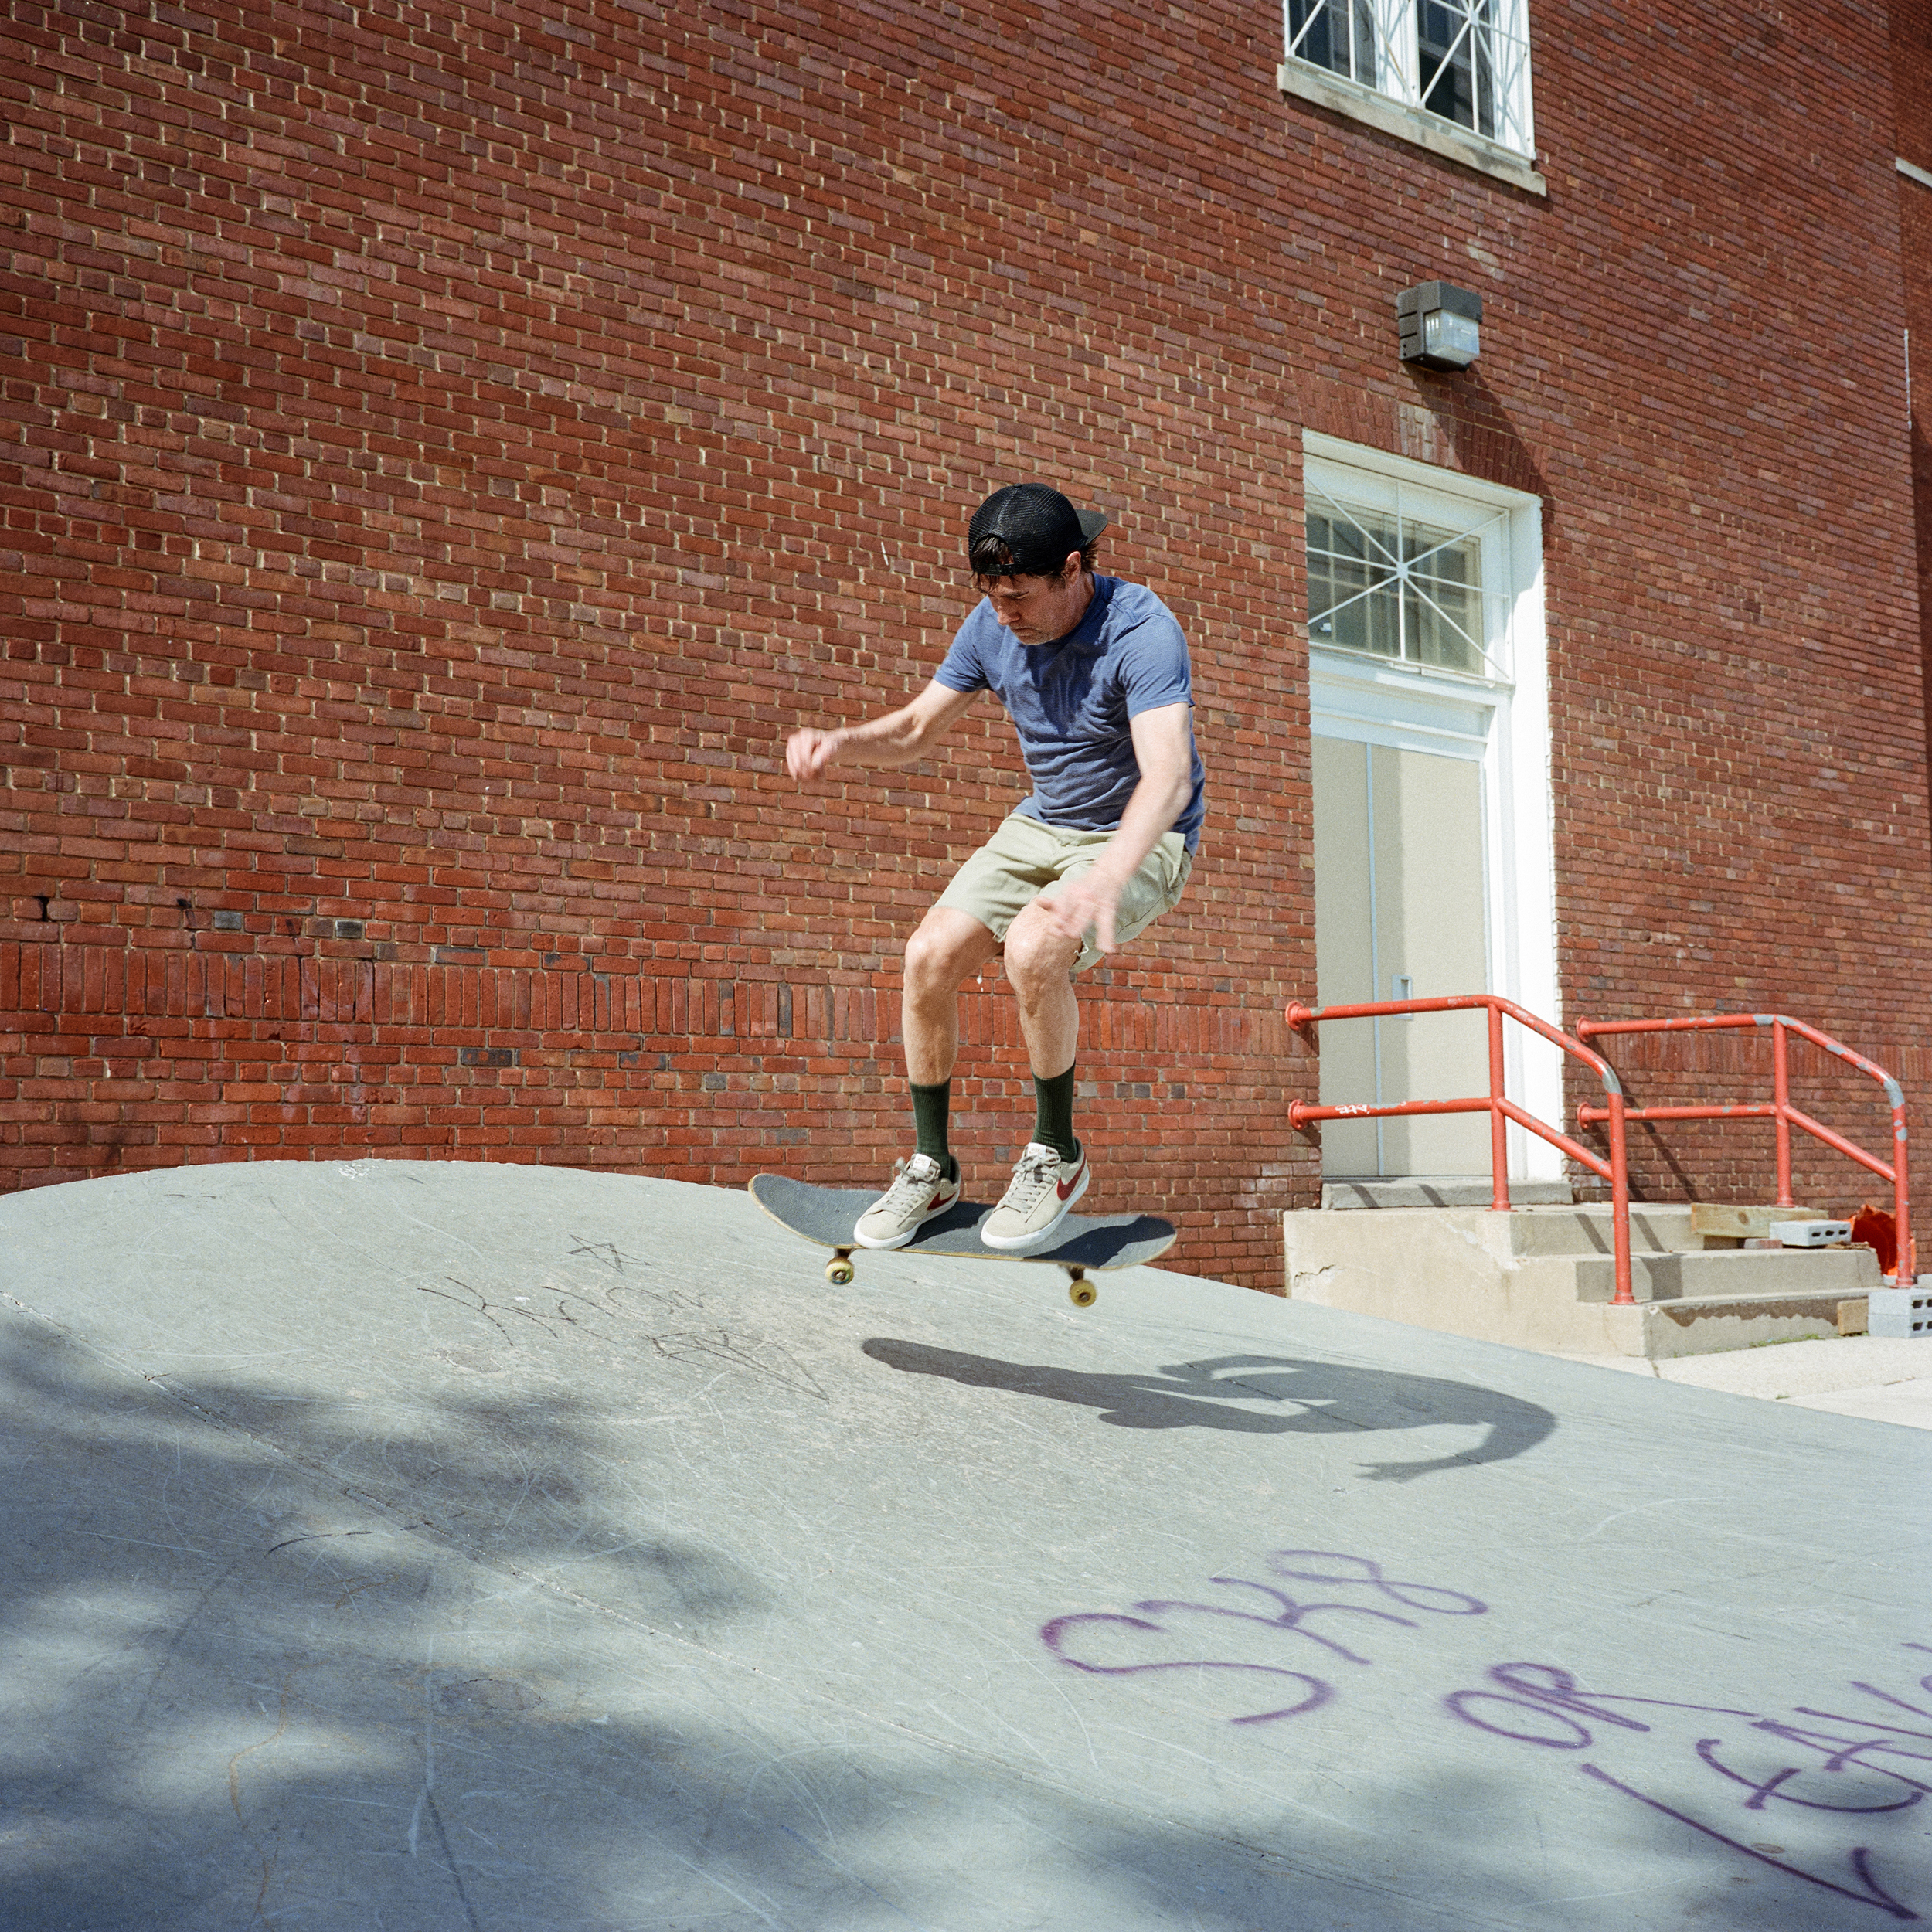 Gen X Skaters for AARP